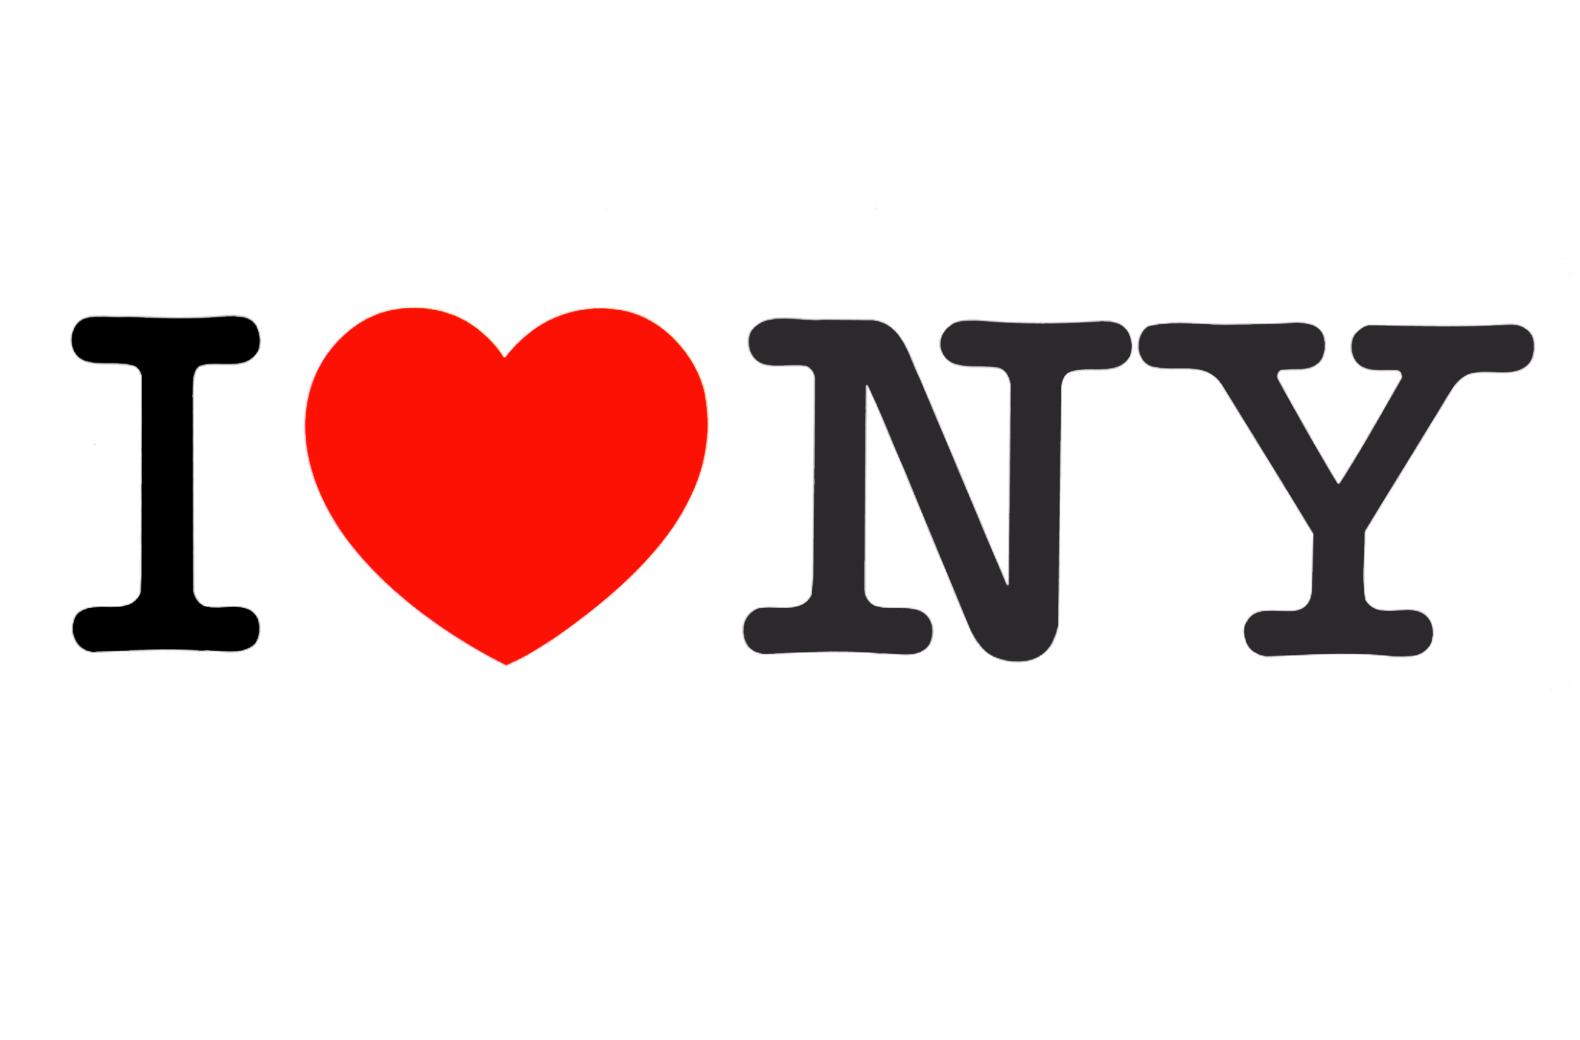 Logotipo i love new york